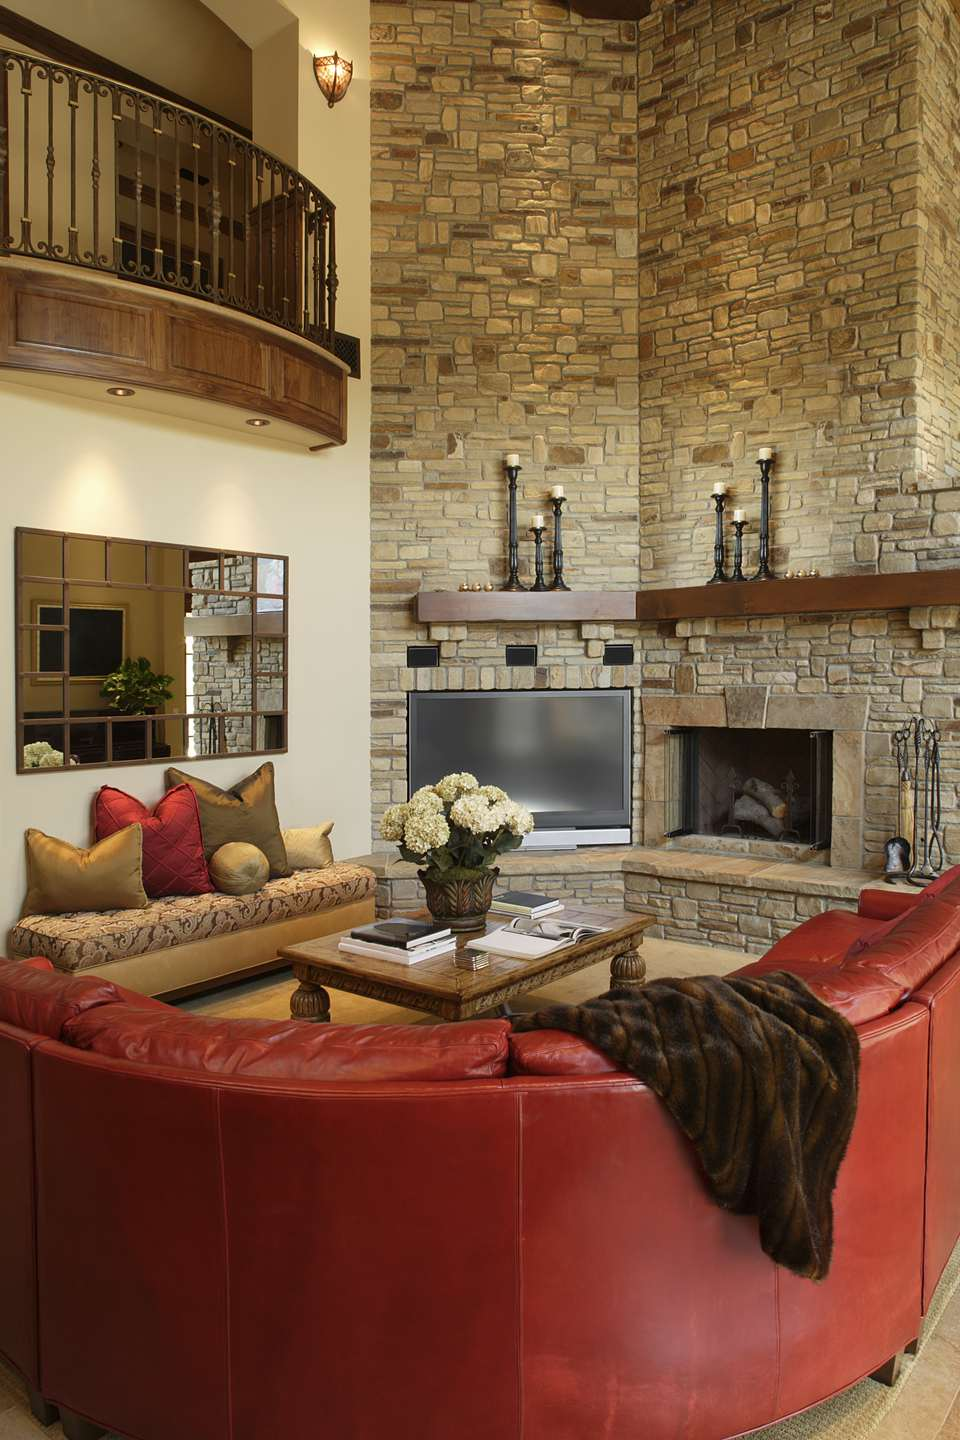 cool stone veneer mesmerizing brick ideas fireplace for astonishing inspiration decoration pics over pictures images